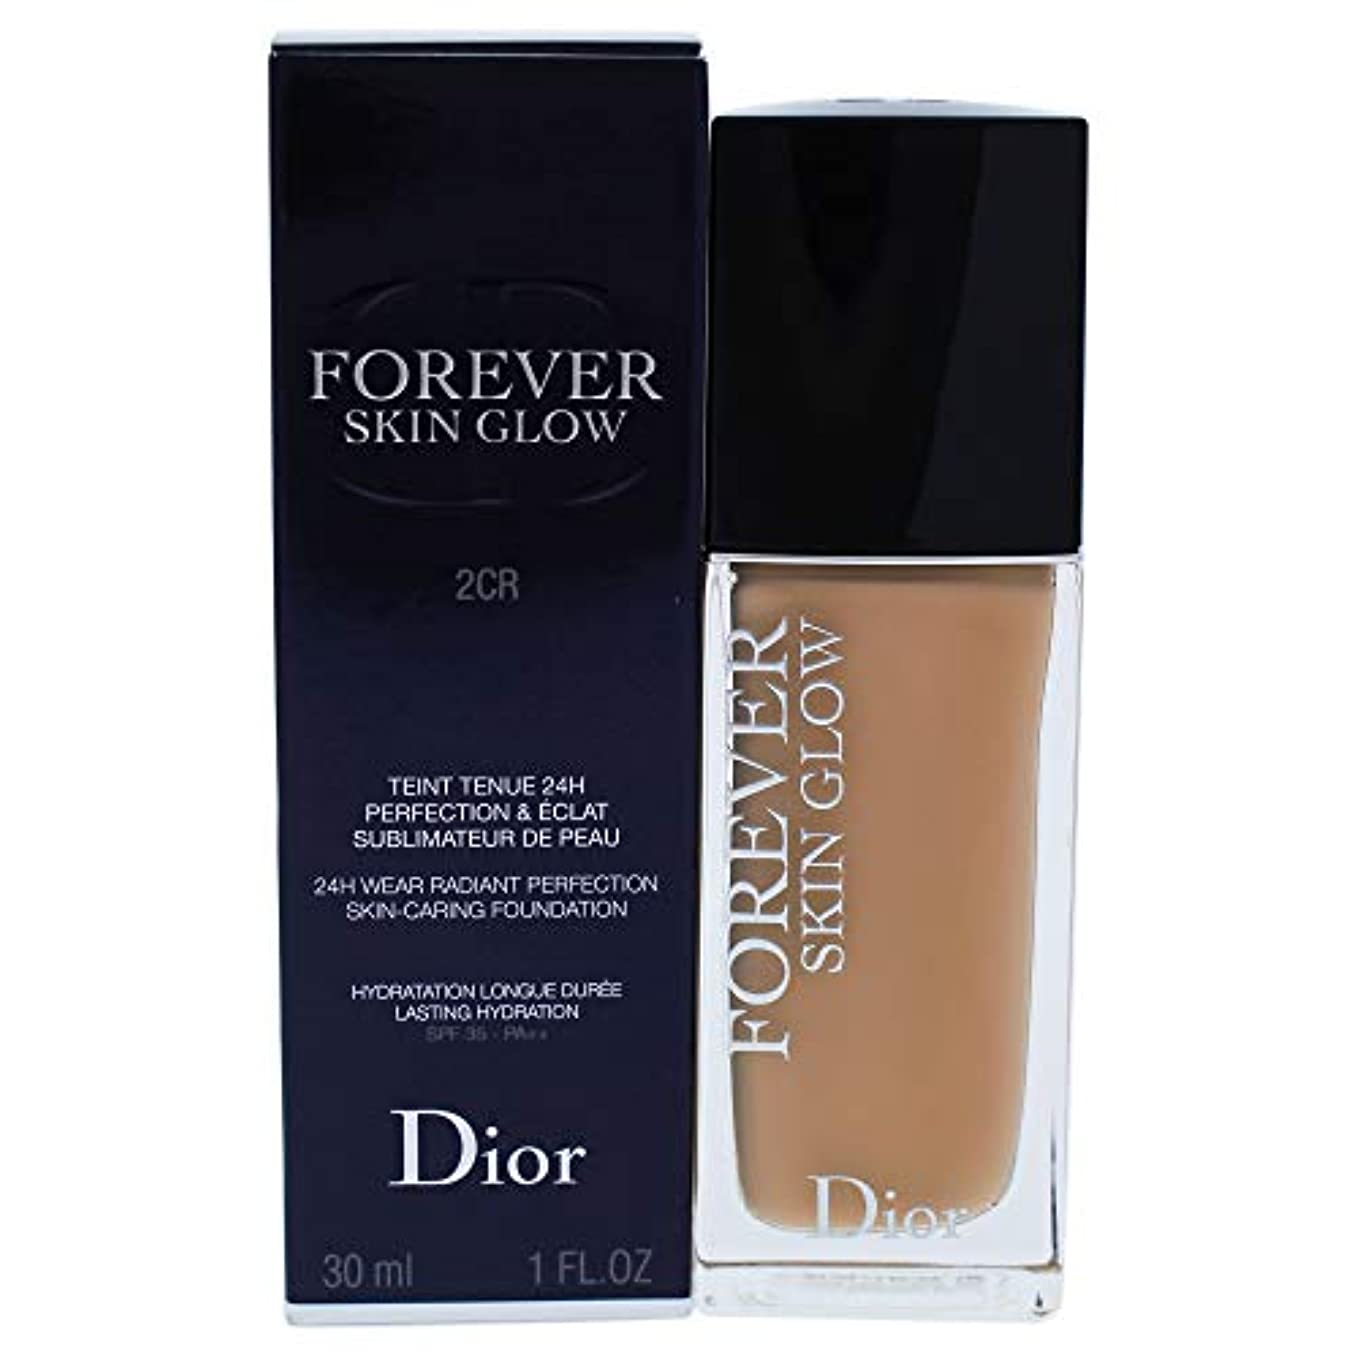 不毛トリム防ぐクリスチャンディオール Dior Forever Skin Glow 24H Wear High Perfection Foundation SPF 35 - # 2CR (Cool Rosy) 30ml/1oz並行輸入品